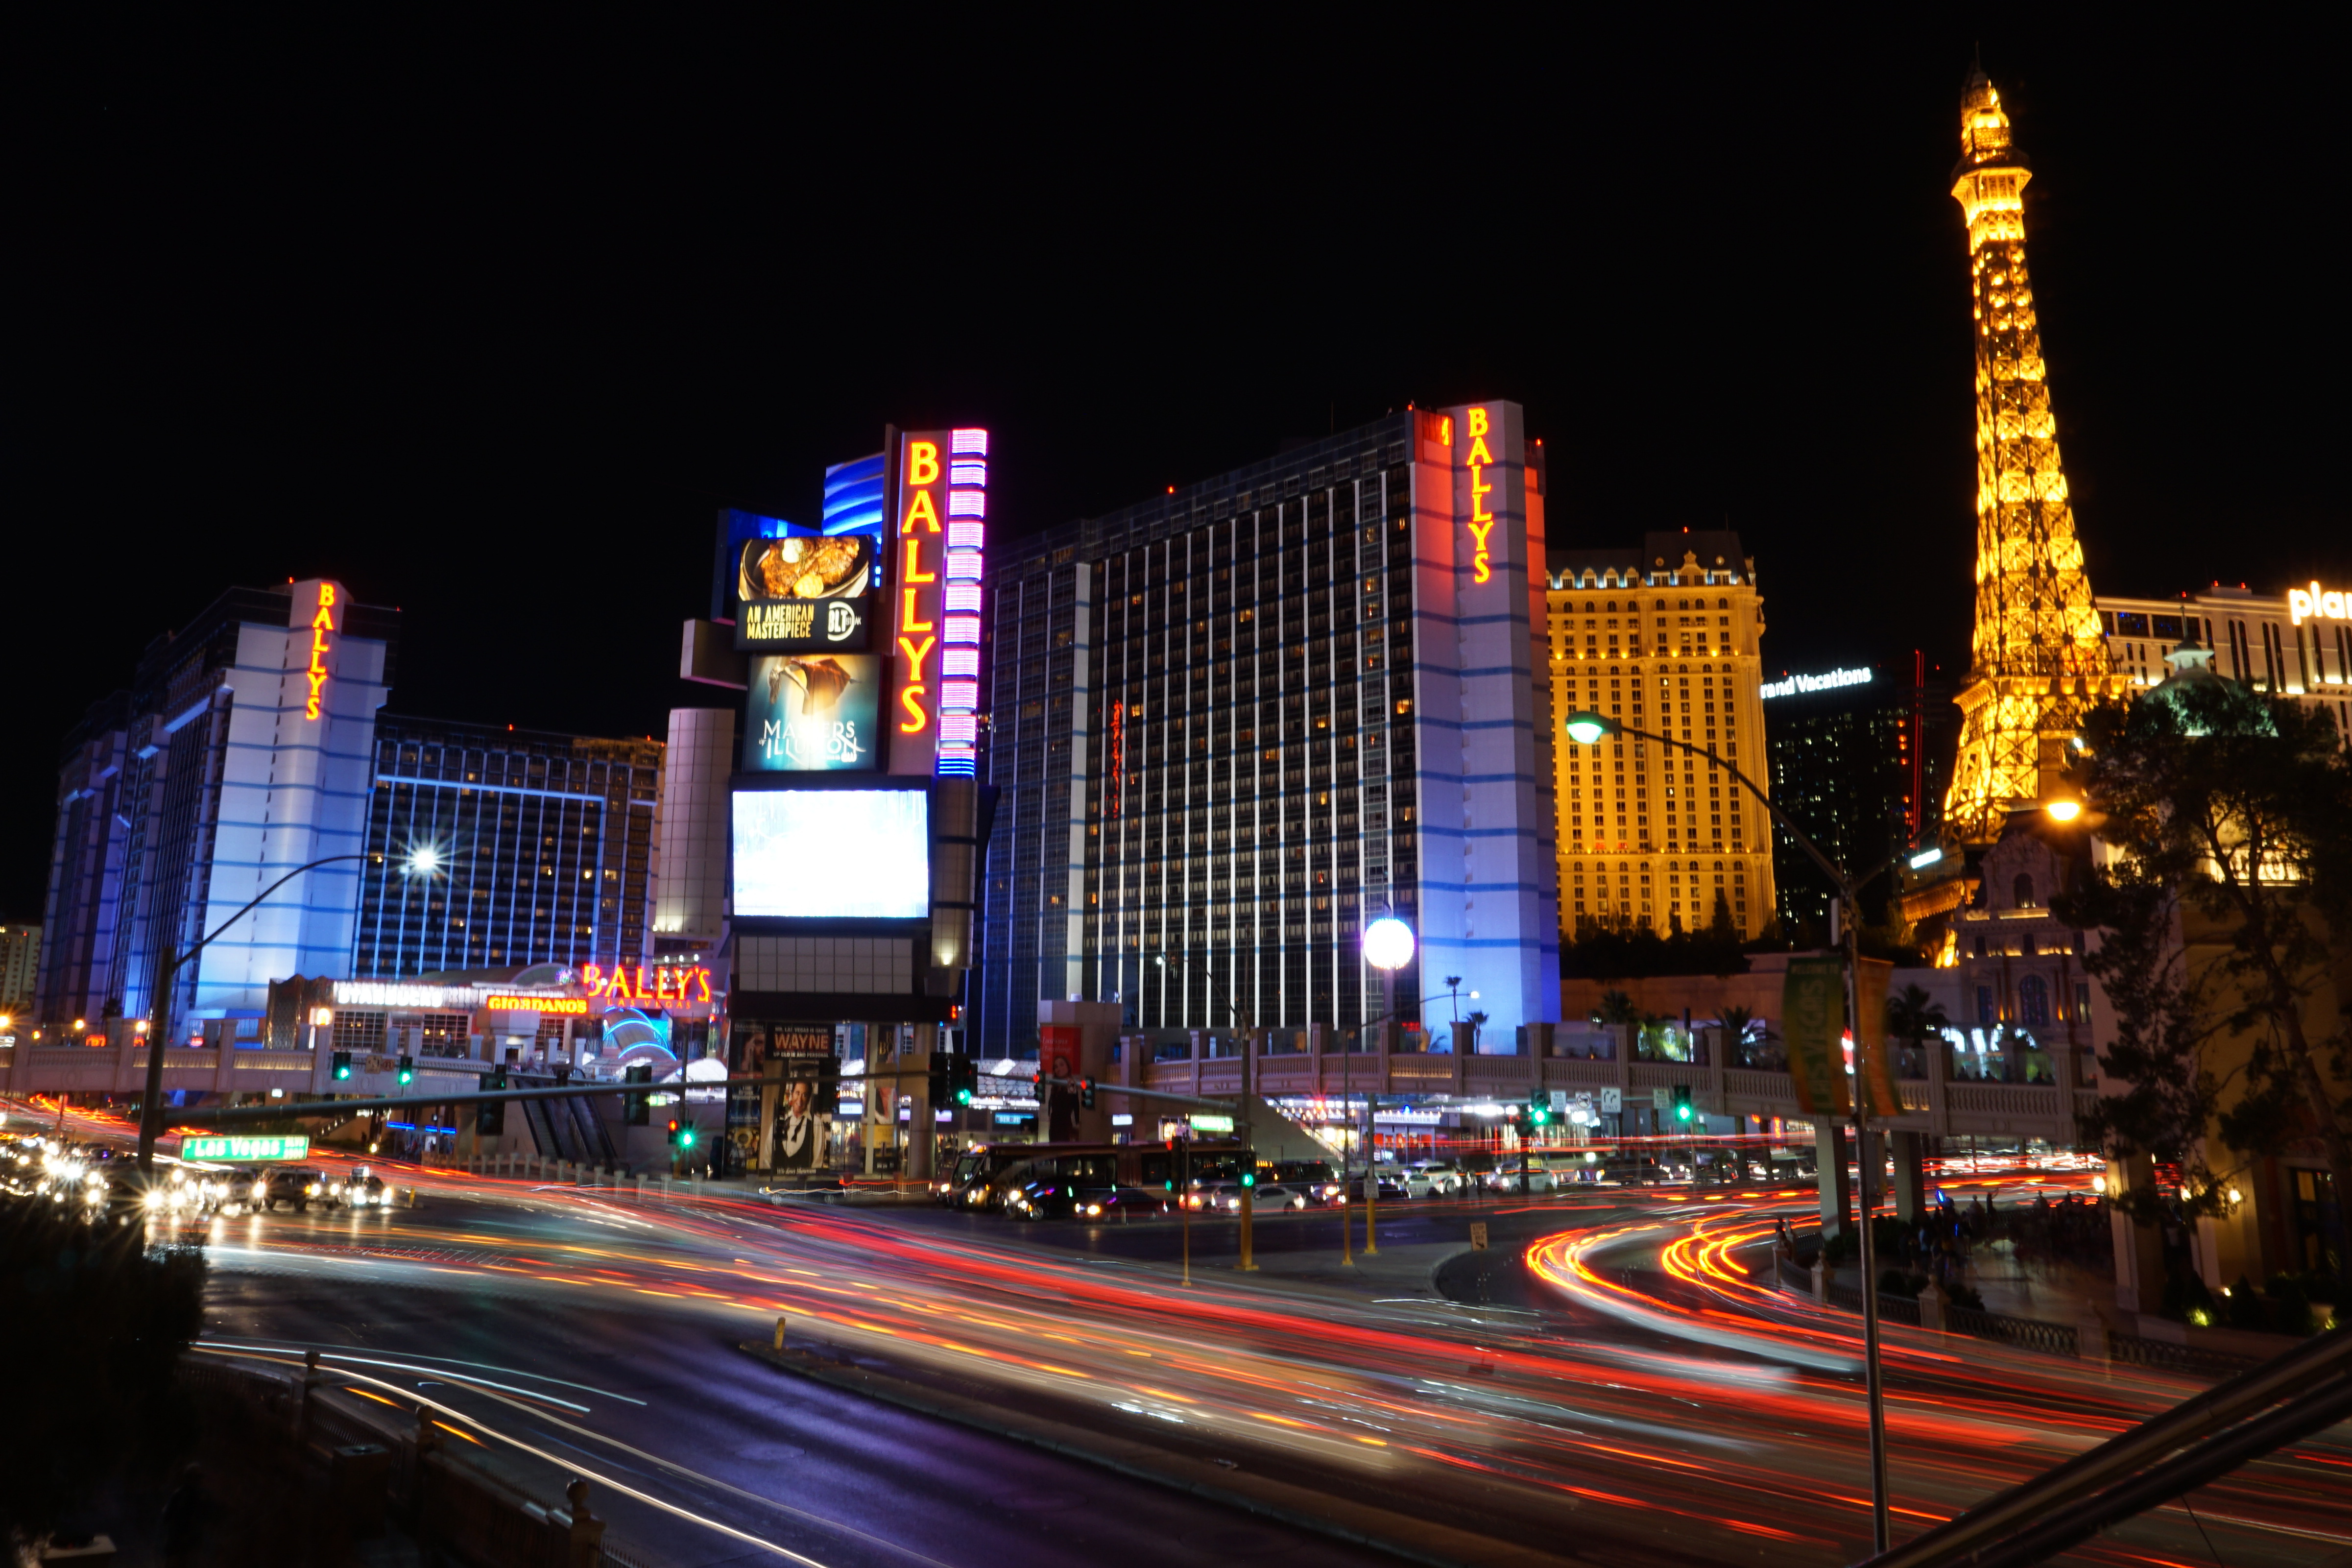 LAS VEGAS   A view of the strip in Las Vegas, Nevada. The